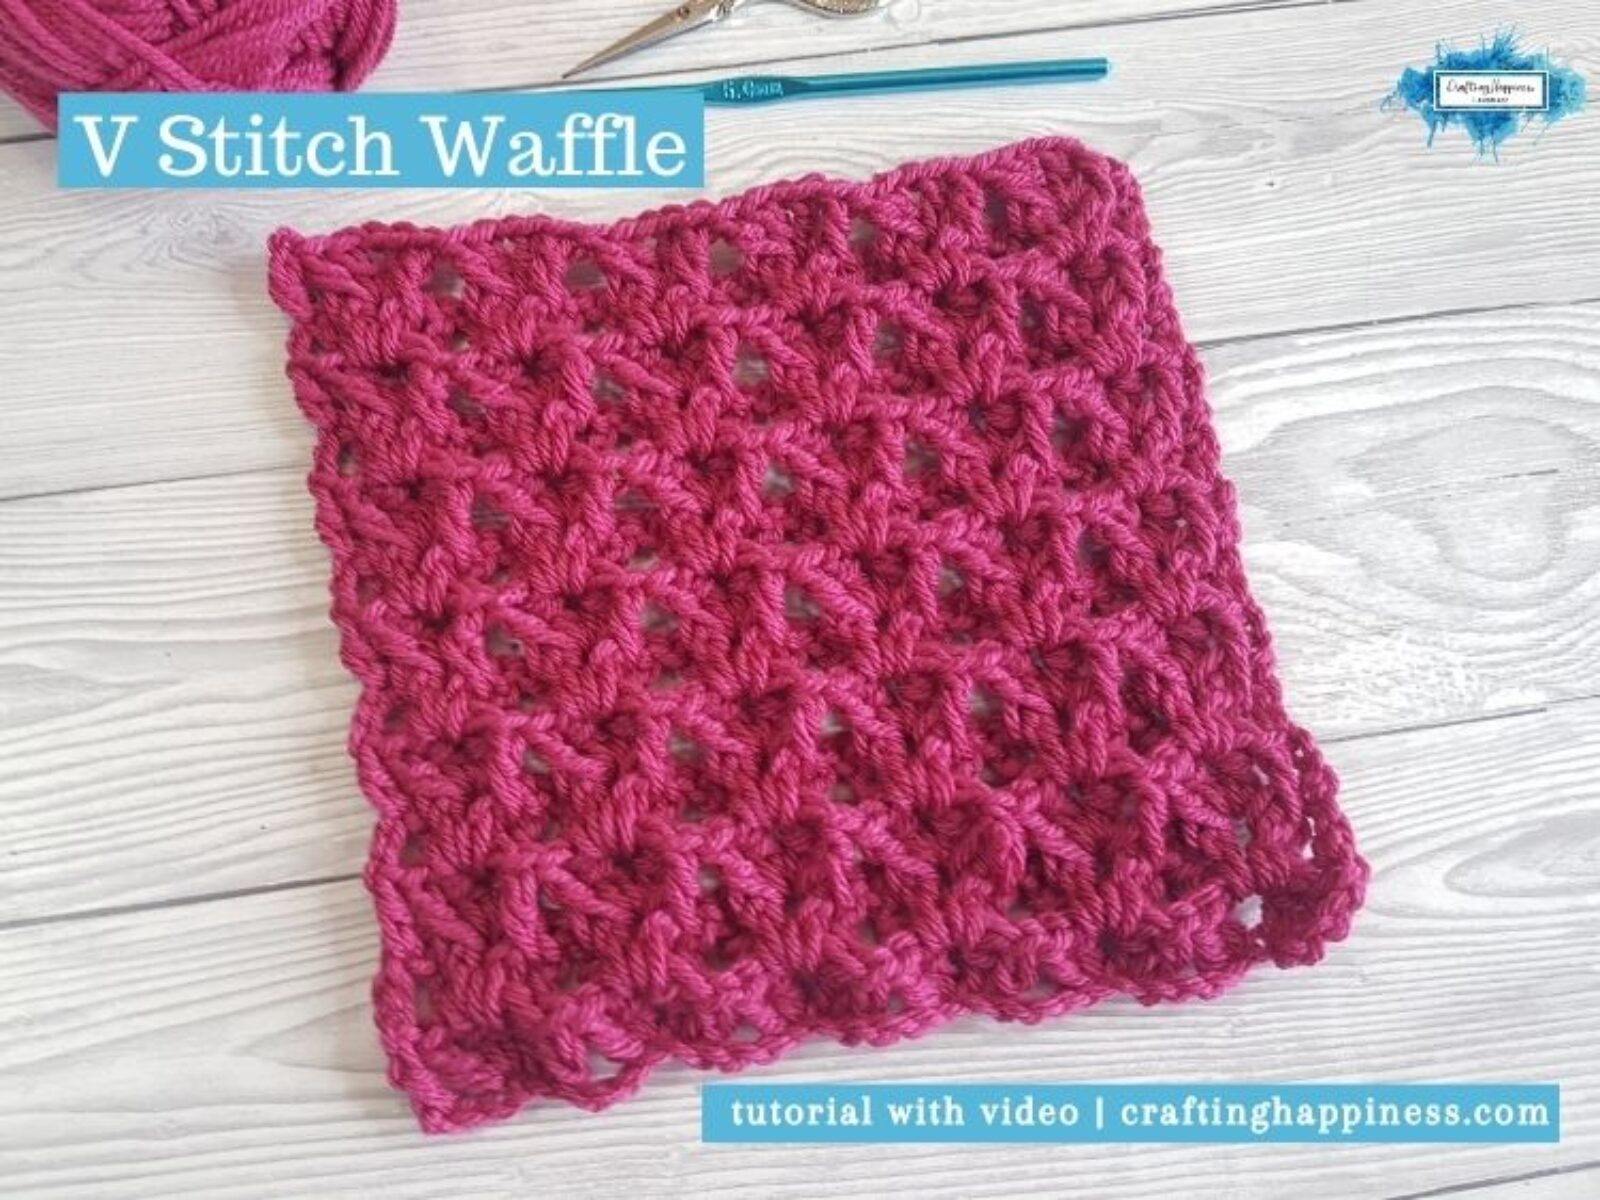 V Stitch Waffle by Crafting Happiness FACEBOOK POSTER